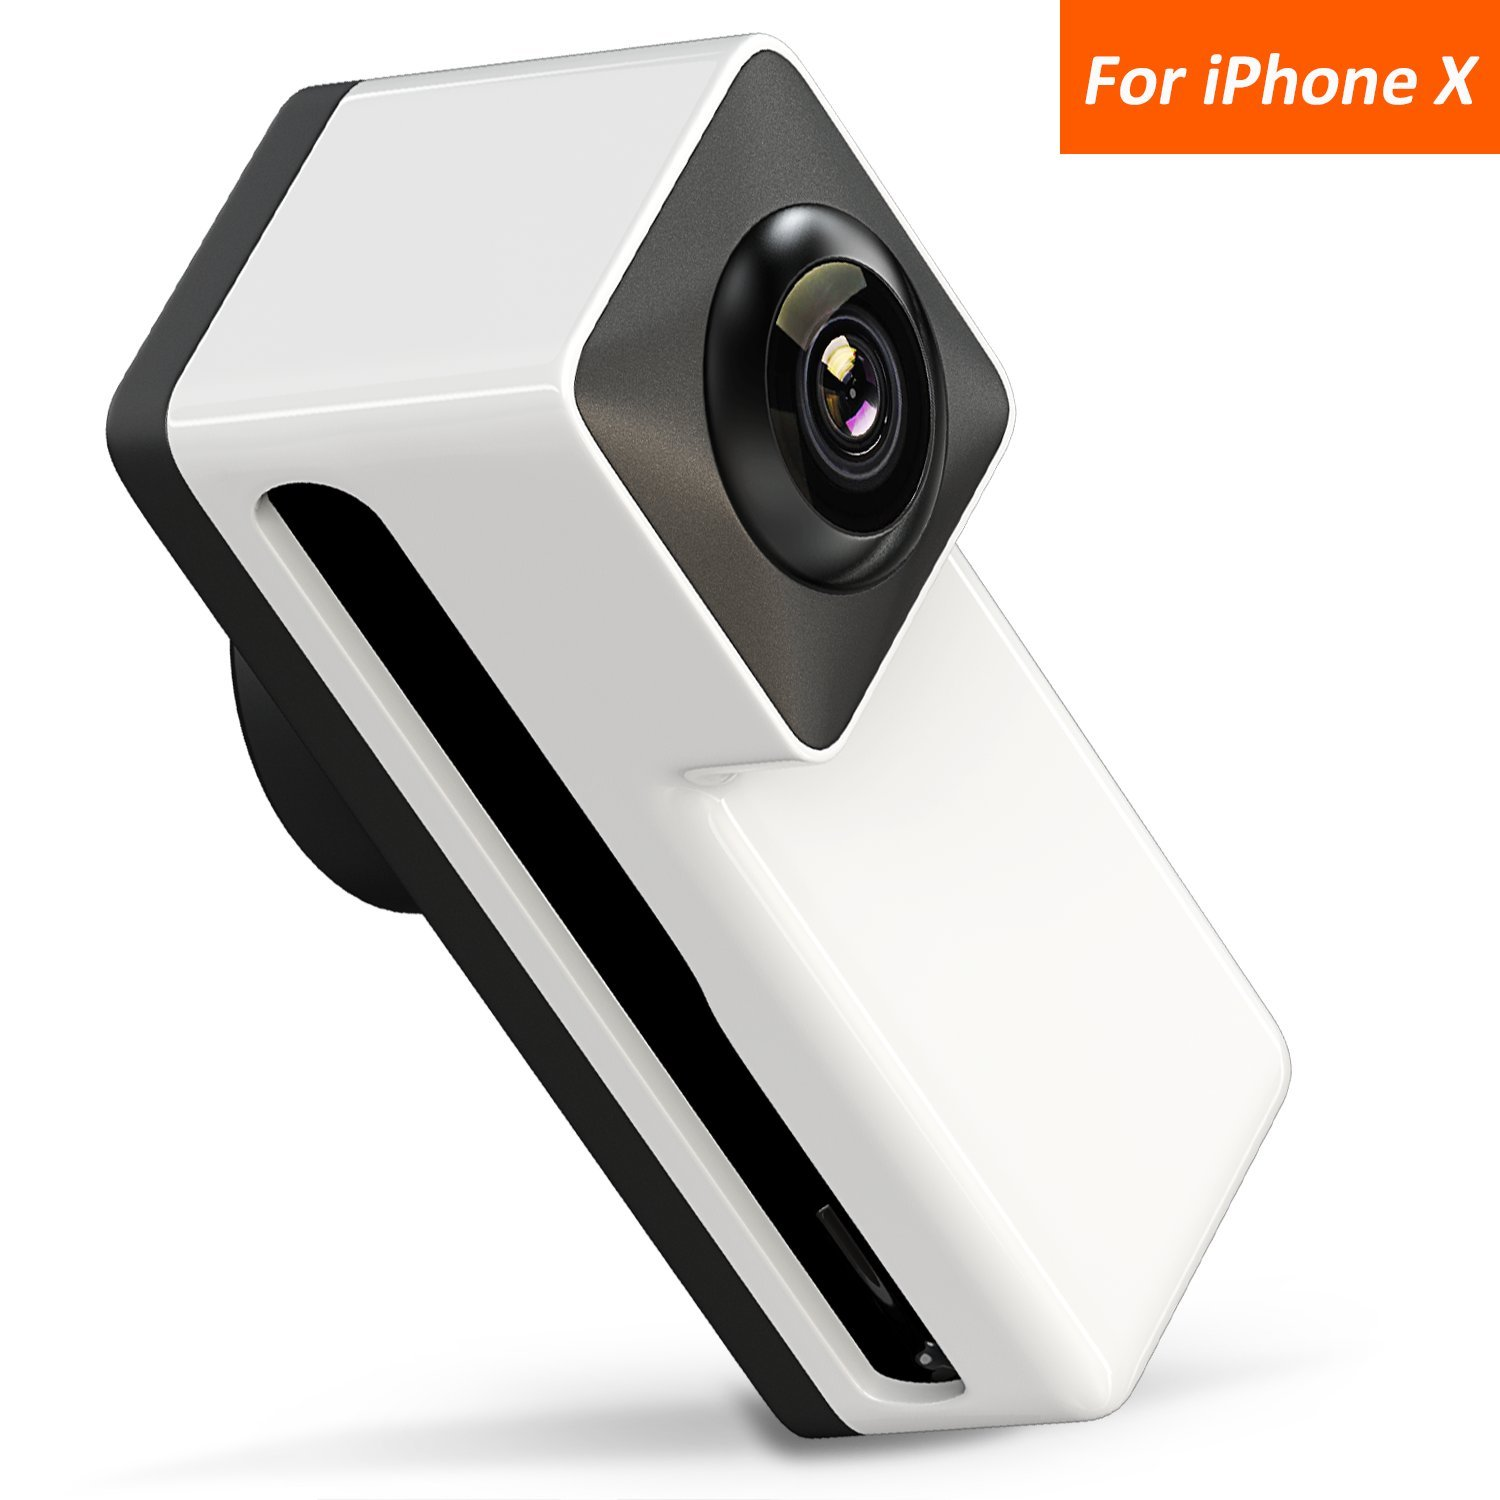 3D Panoramic Lens for iPhone X, Comsoon 360 Degree Phone Lens, Front/Rear 180 Degree Fisheye Lens Design, Make your iPhone a 360° Panoramic Camera, Take Cool Interesting Panoramic Photos (Black)